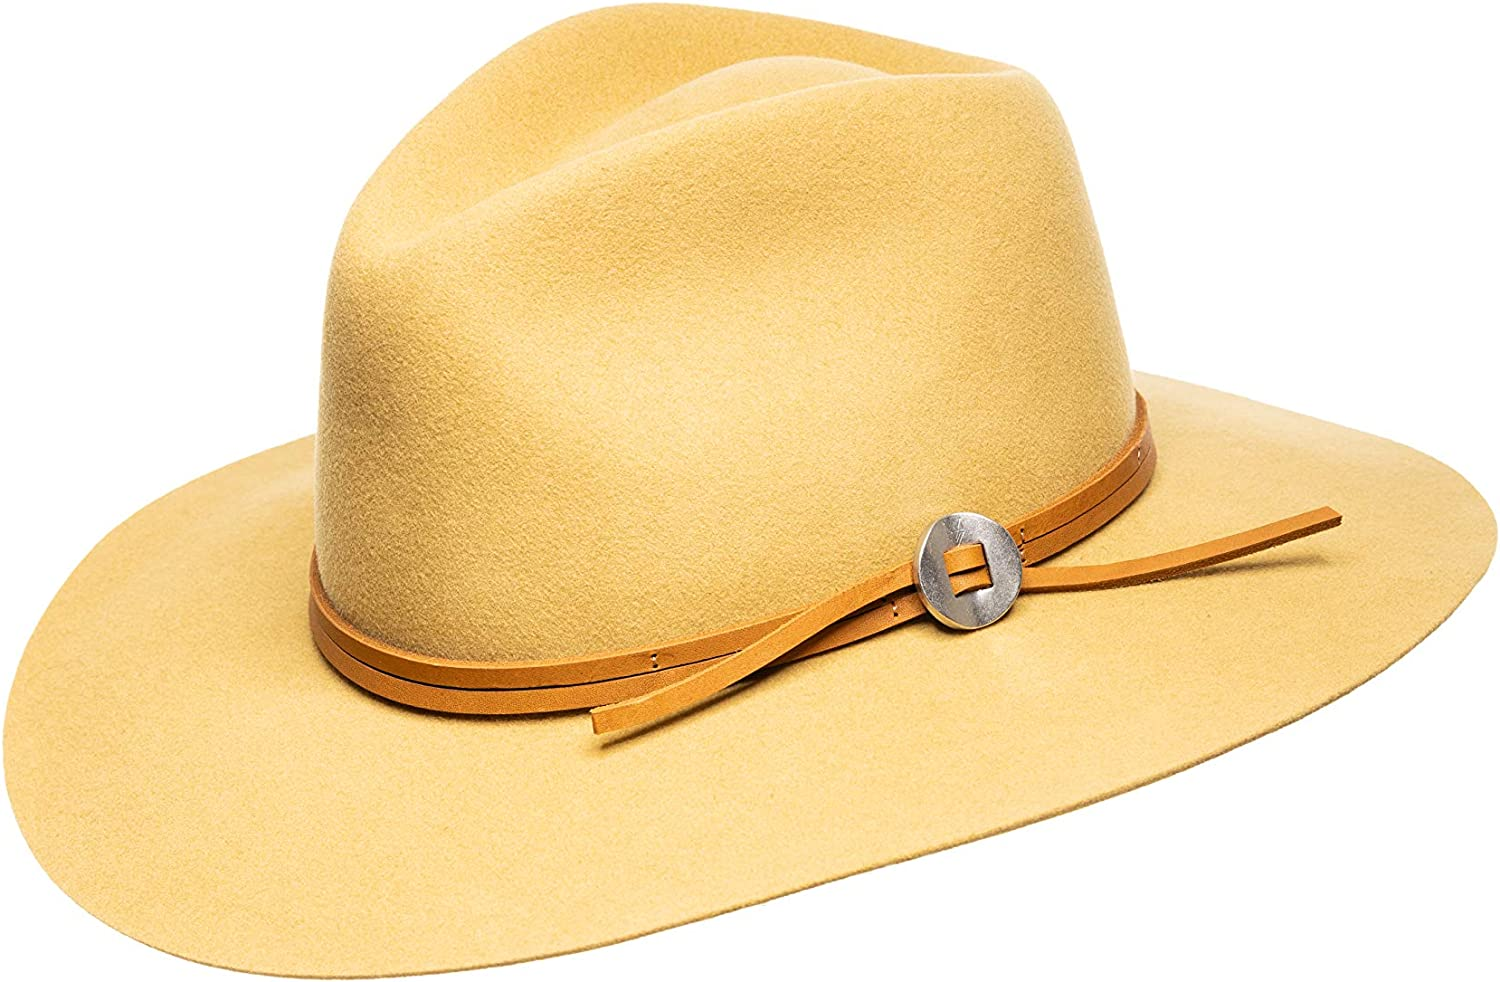 Jamie Slye The Phoebe Wool Felt Fedora with Wide Brim and Leather Hat Band